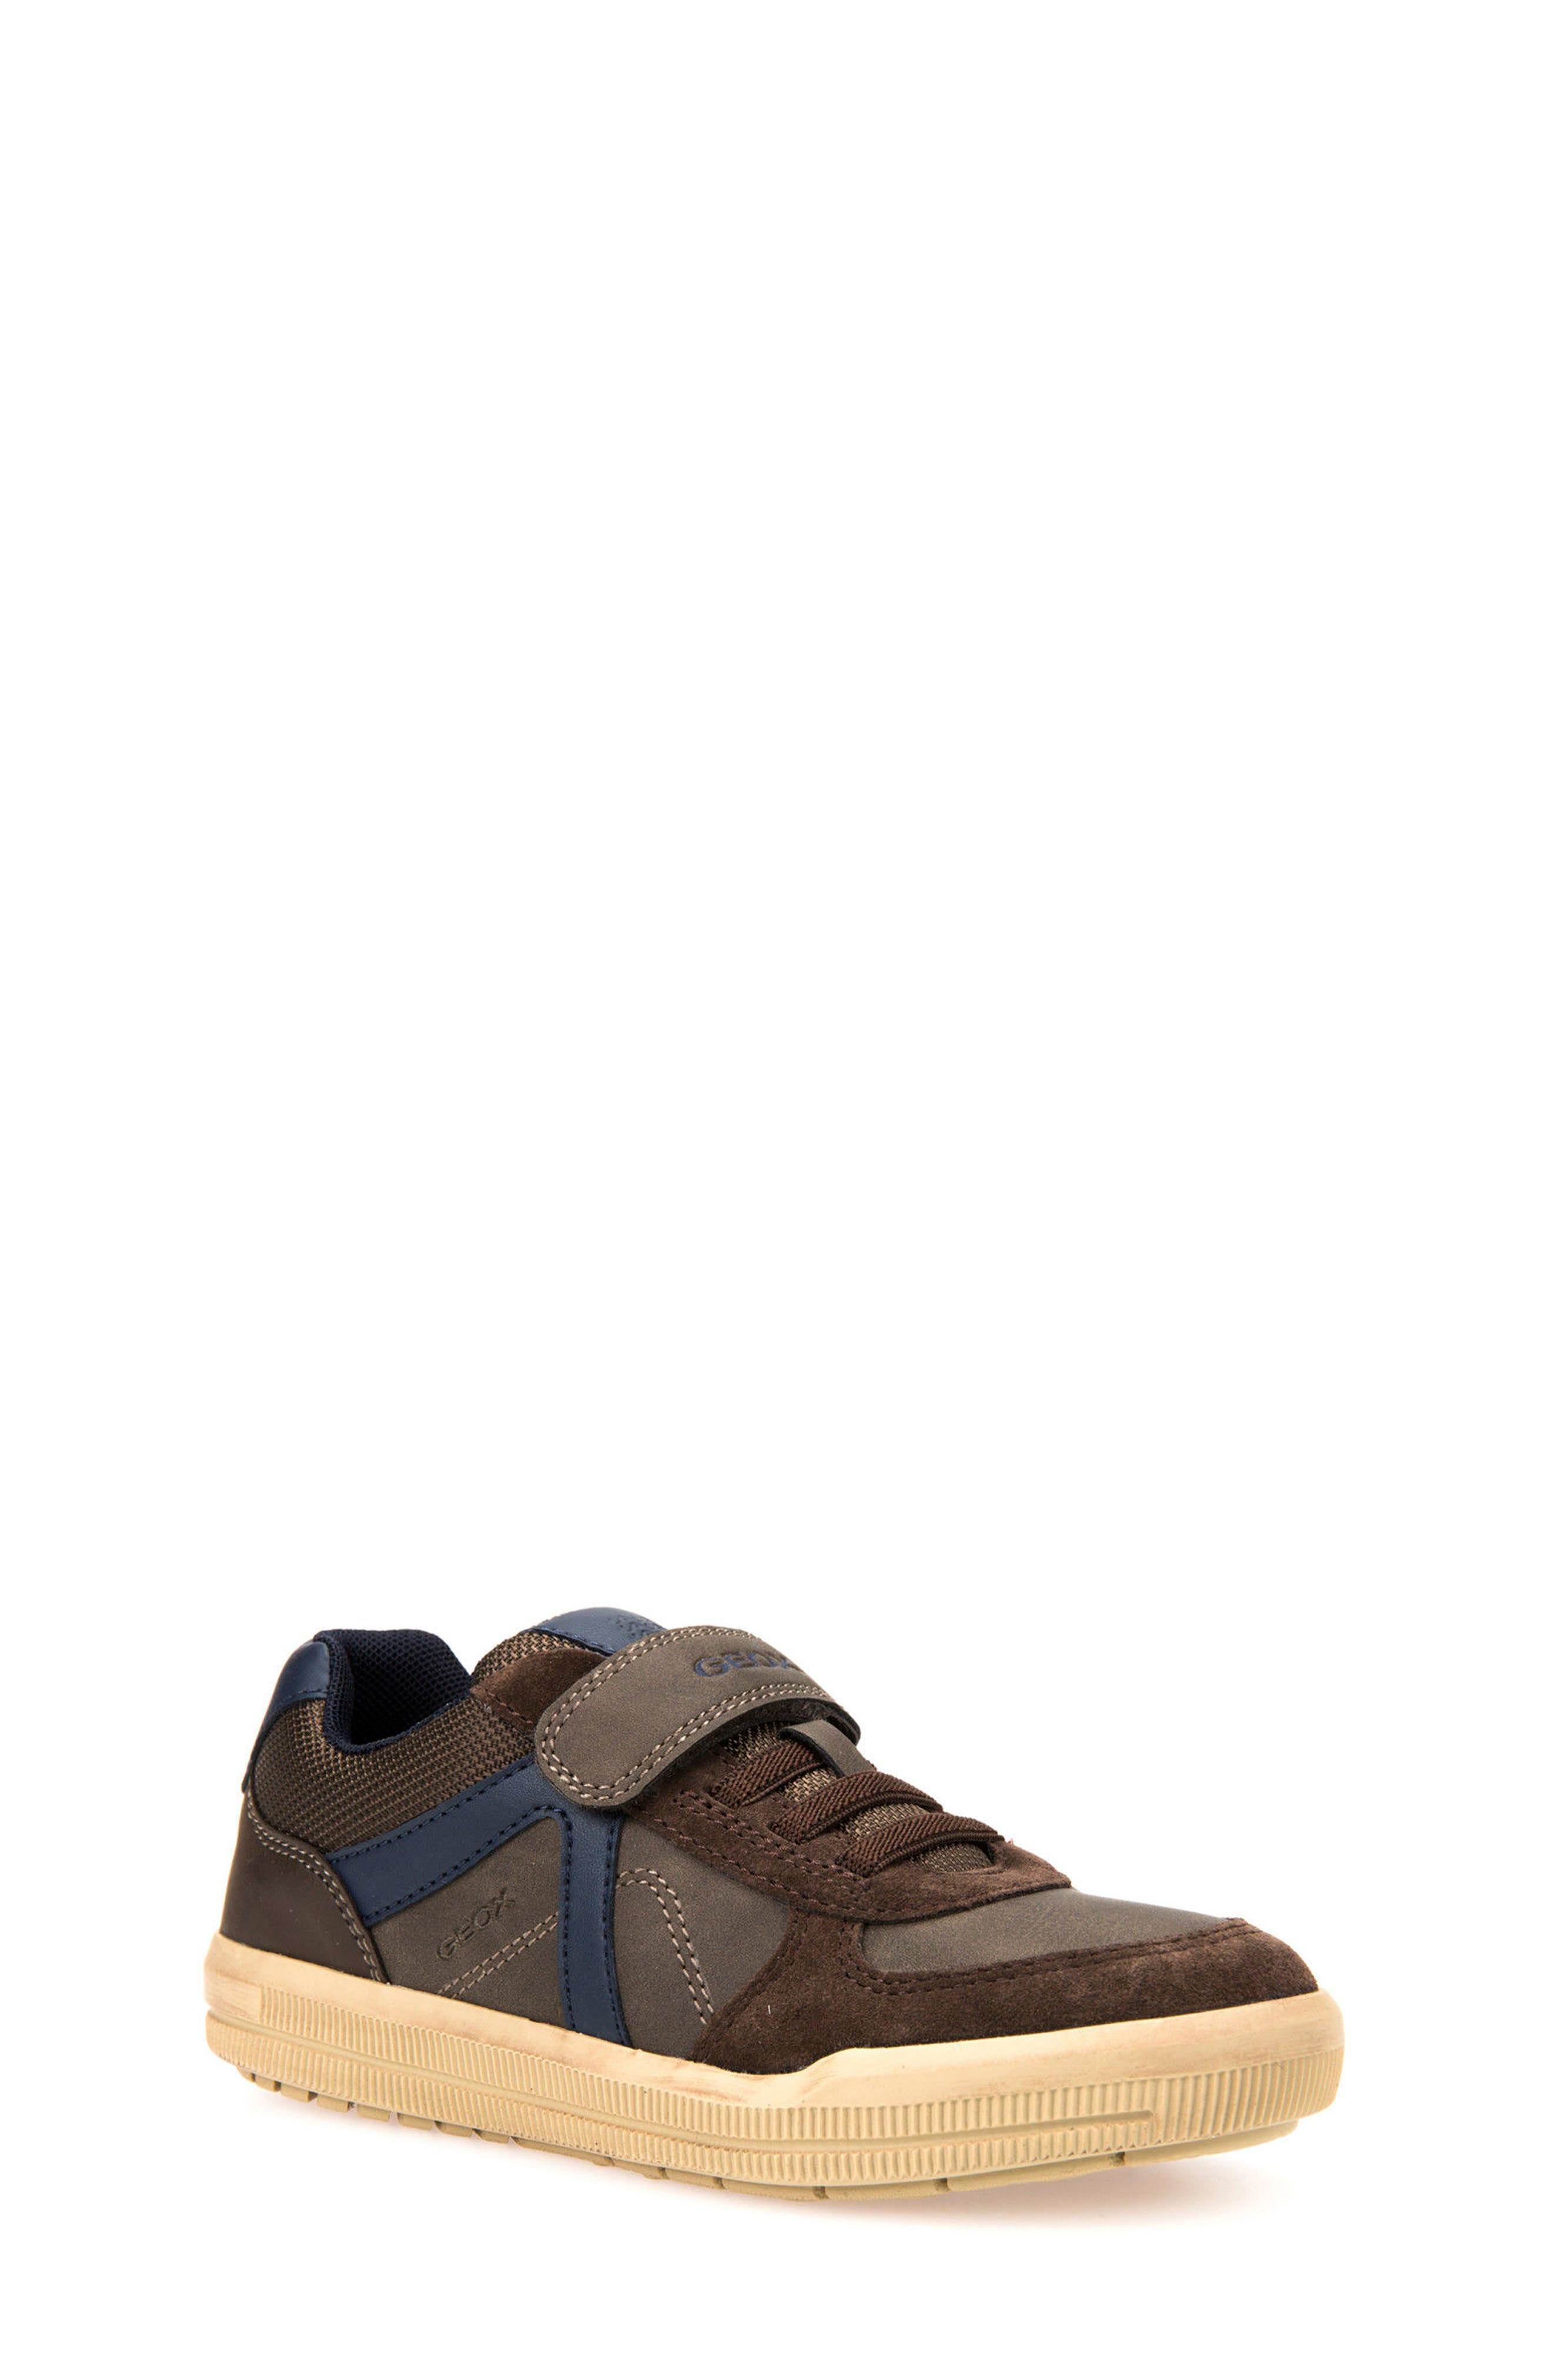 Arzach Low Top Sneaker,                             Main thumbnail 1, color,                             200